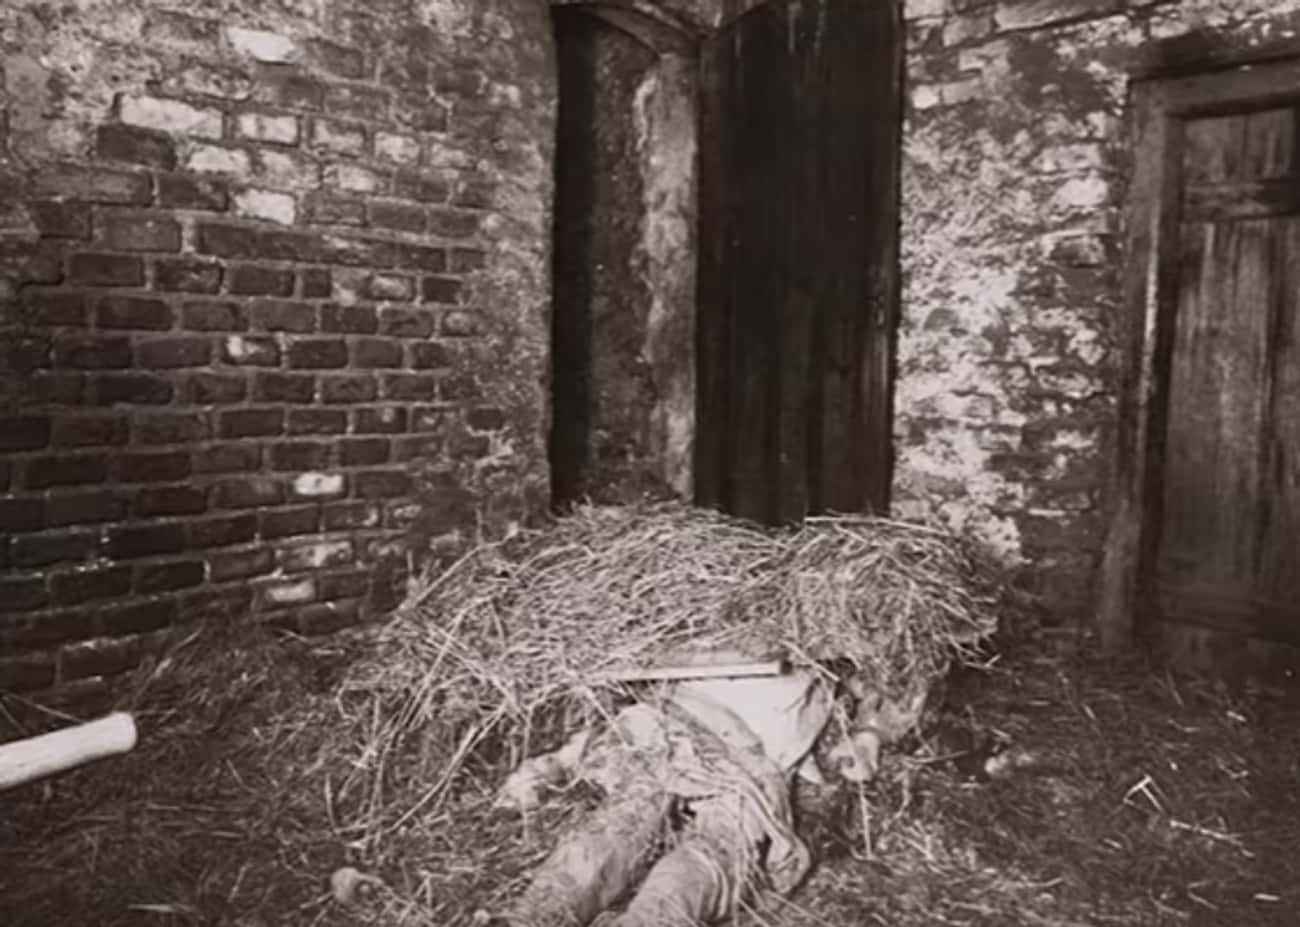 One Of The Victims Was So Scar is listed (or ranked) 3 on the list 11 Disturbing Facts About The Unsolved Hinterkaifeck Murders